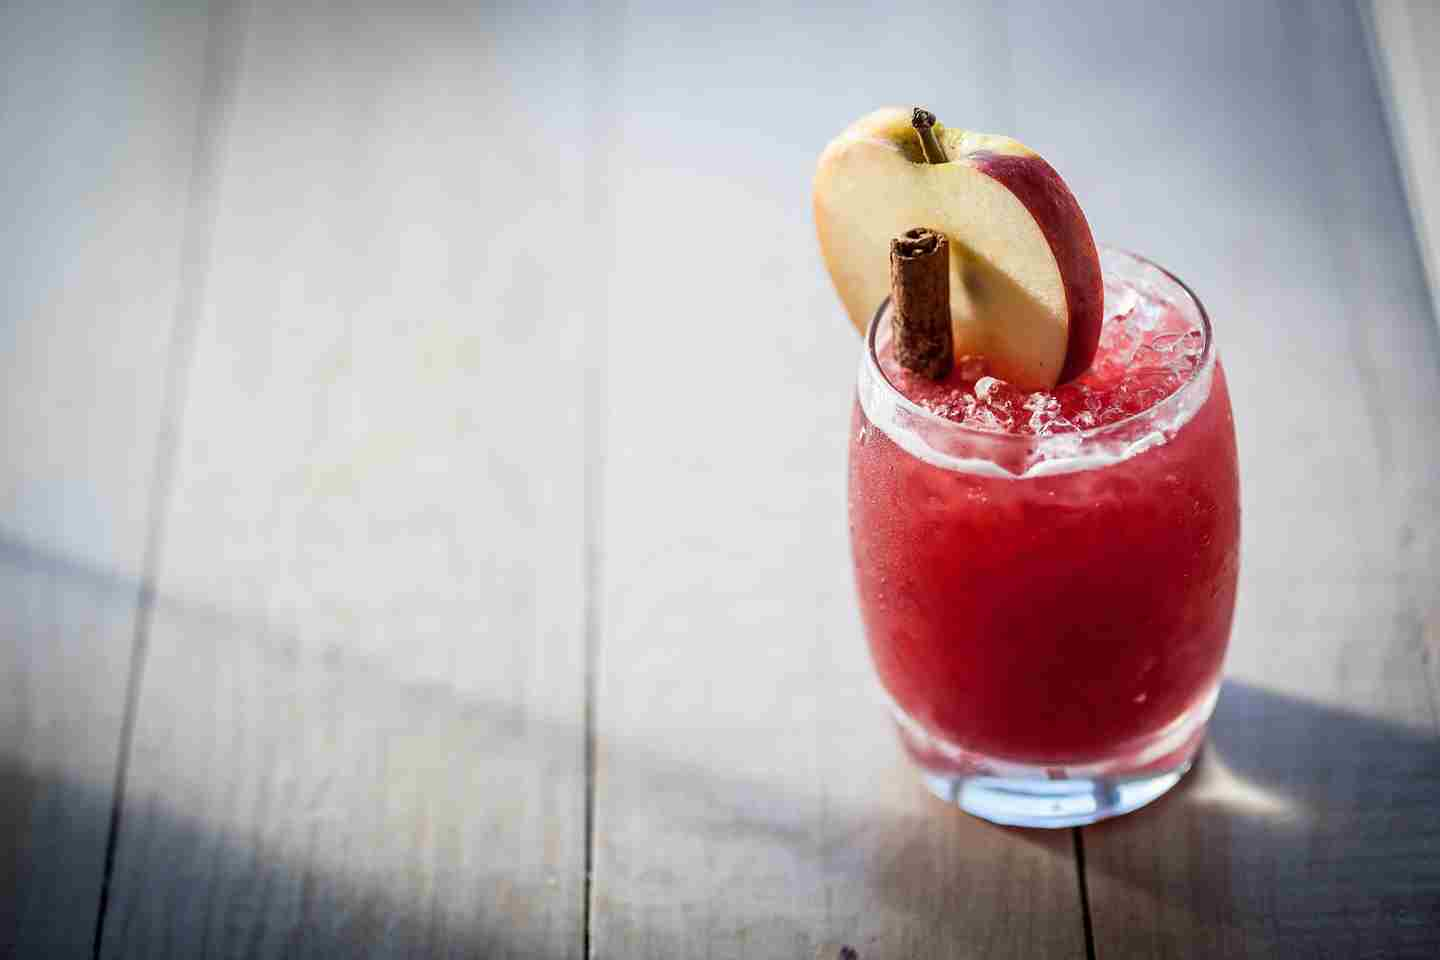 Strawberry-and-apple-crumble-cocktail.jpg